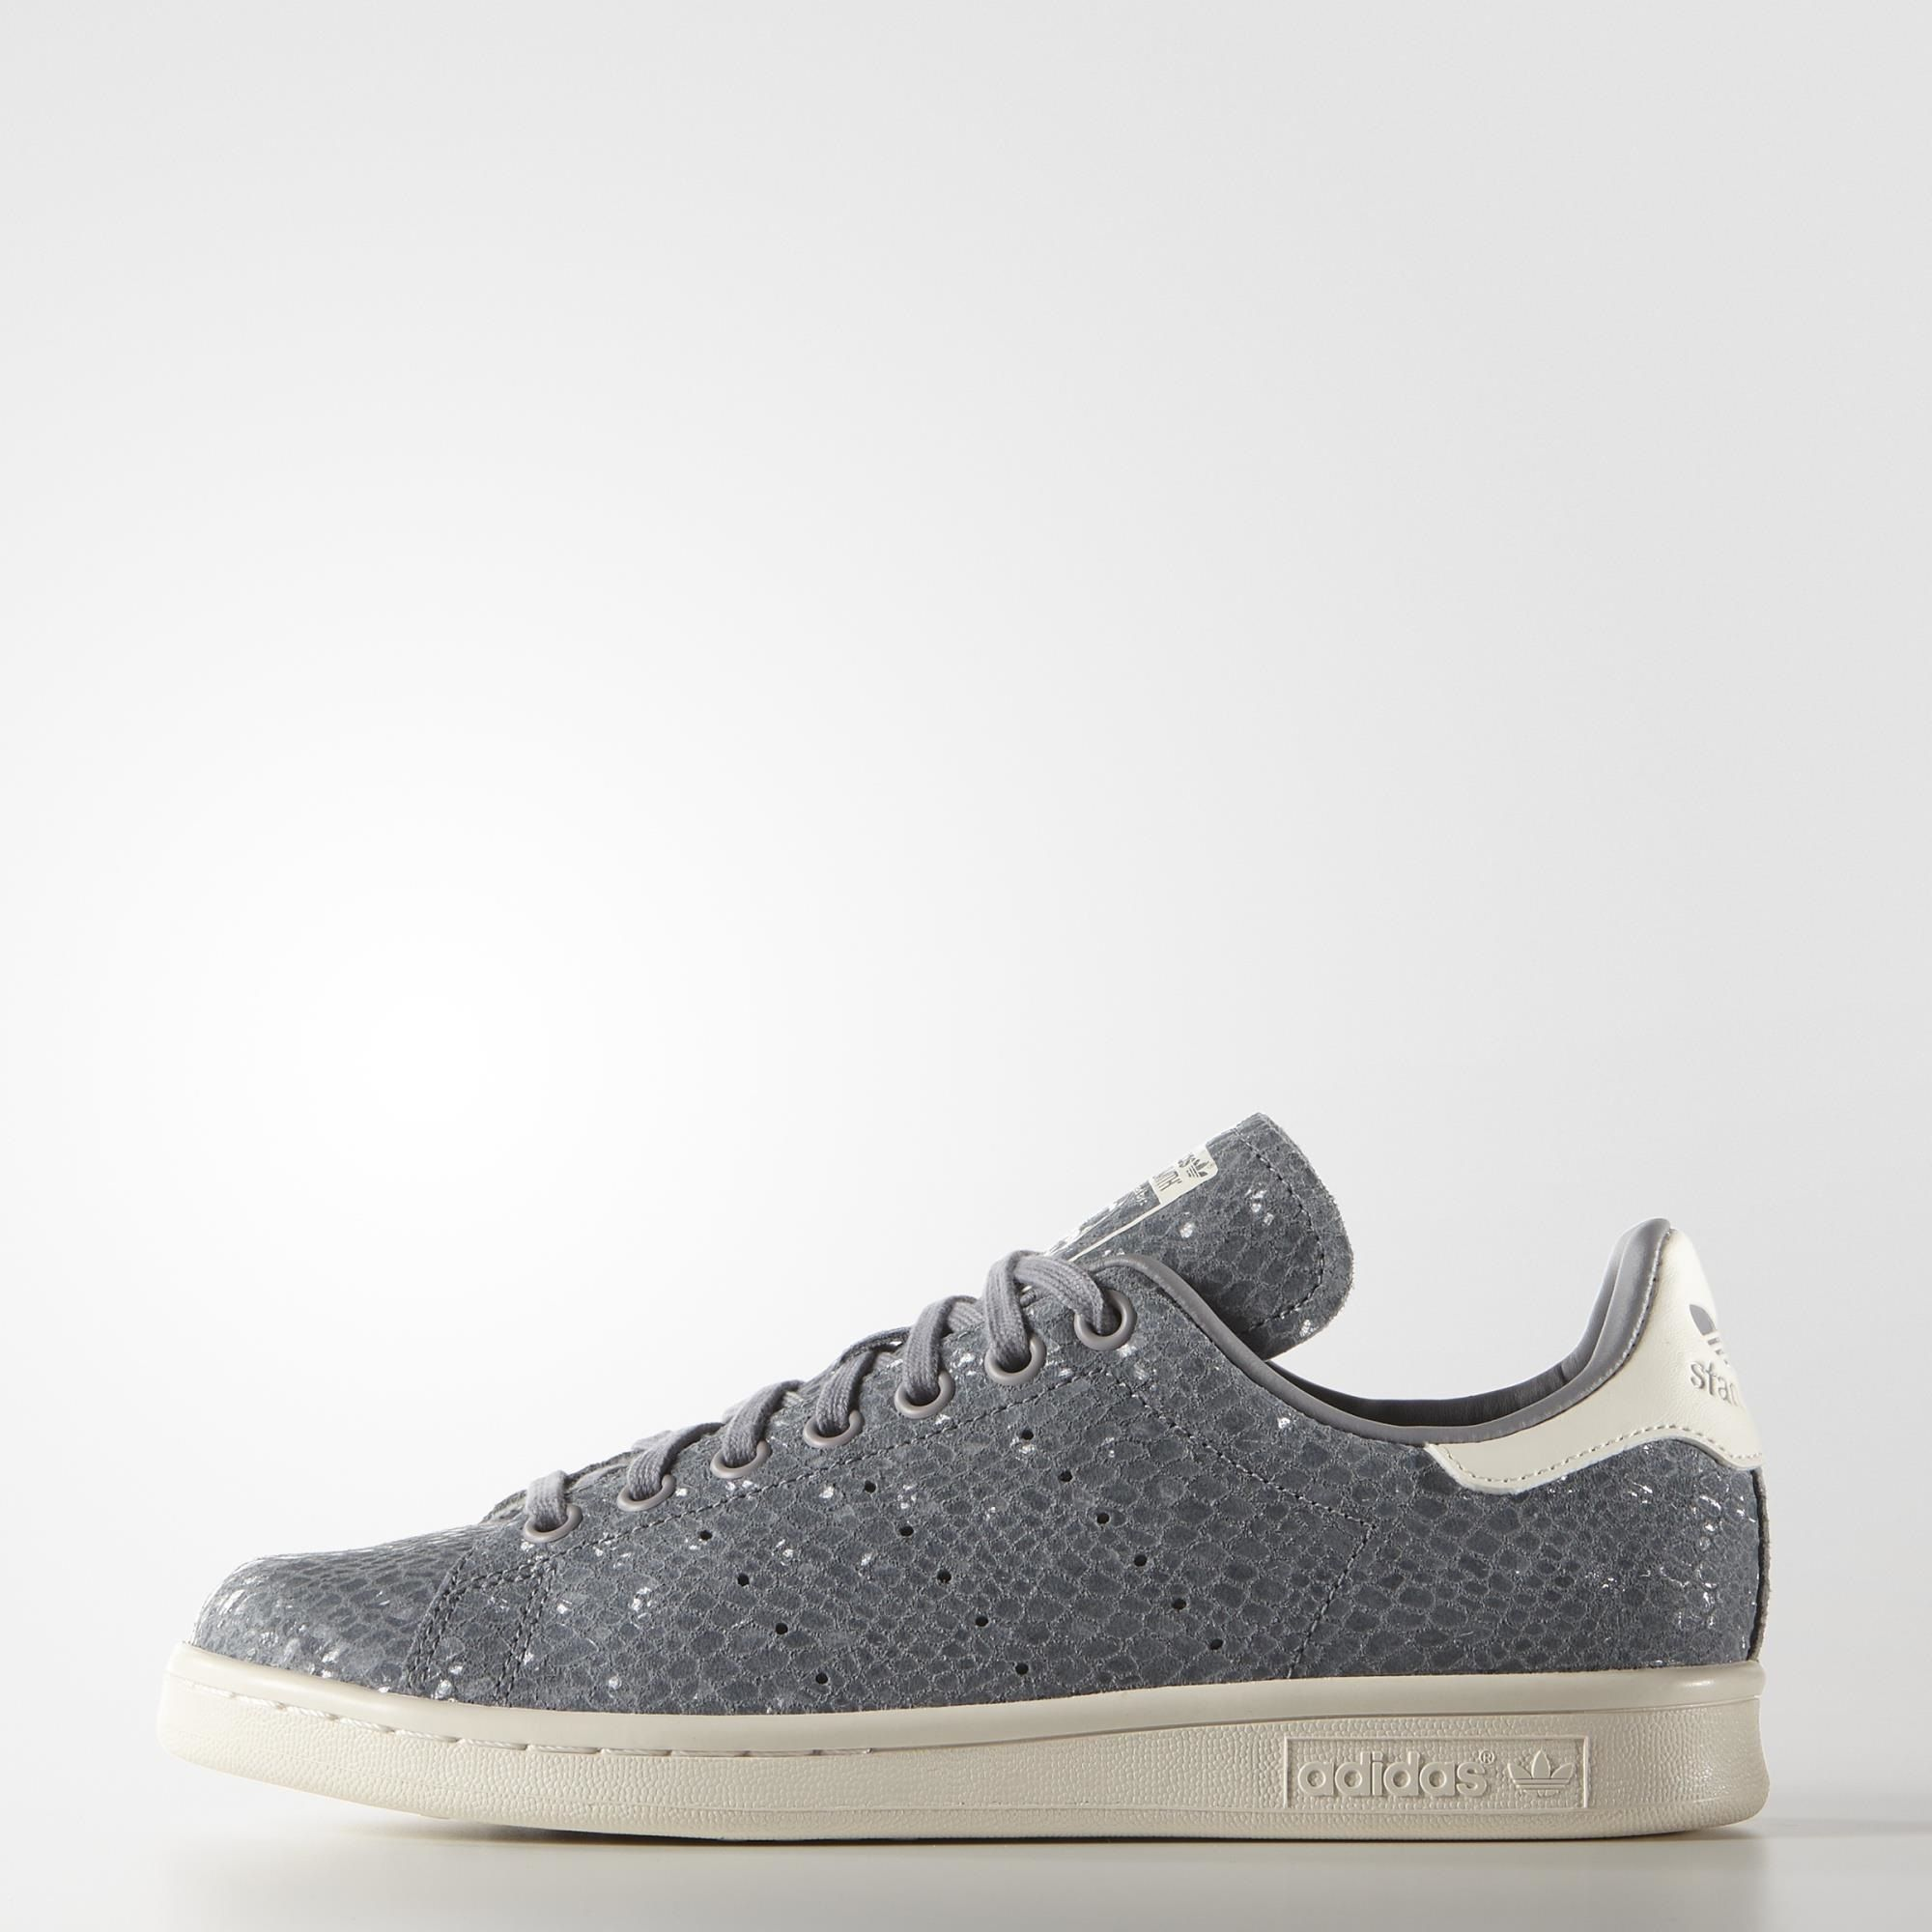 Stan Smith Snakeskin Shoes